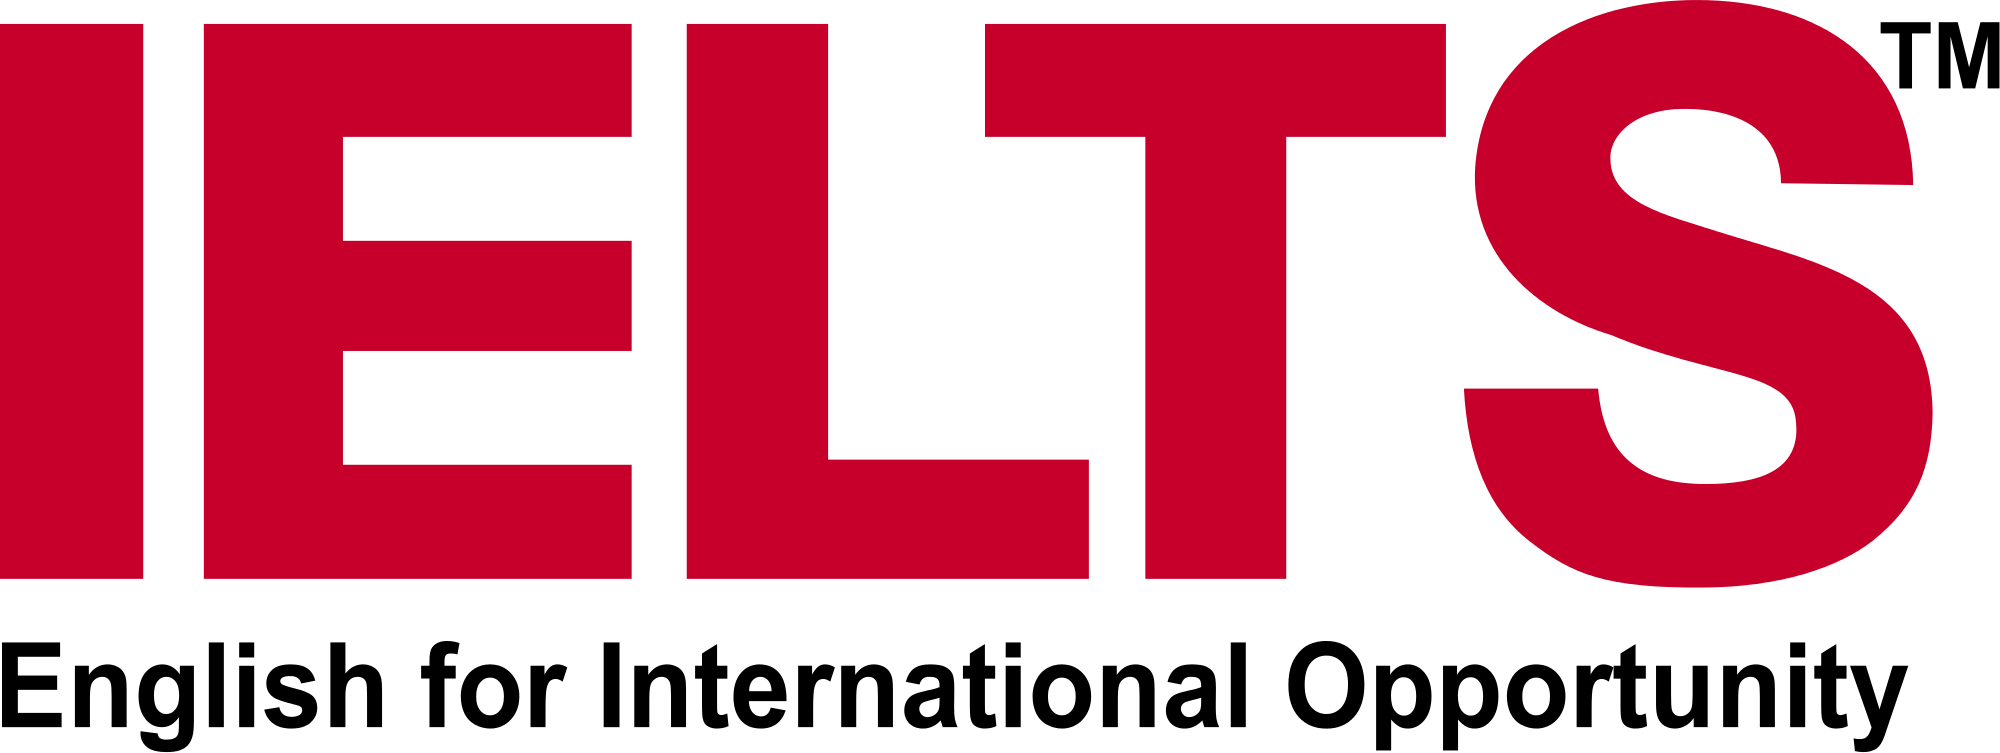 Ielts slots availability in hyderabad